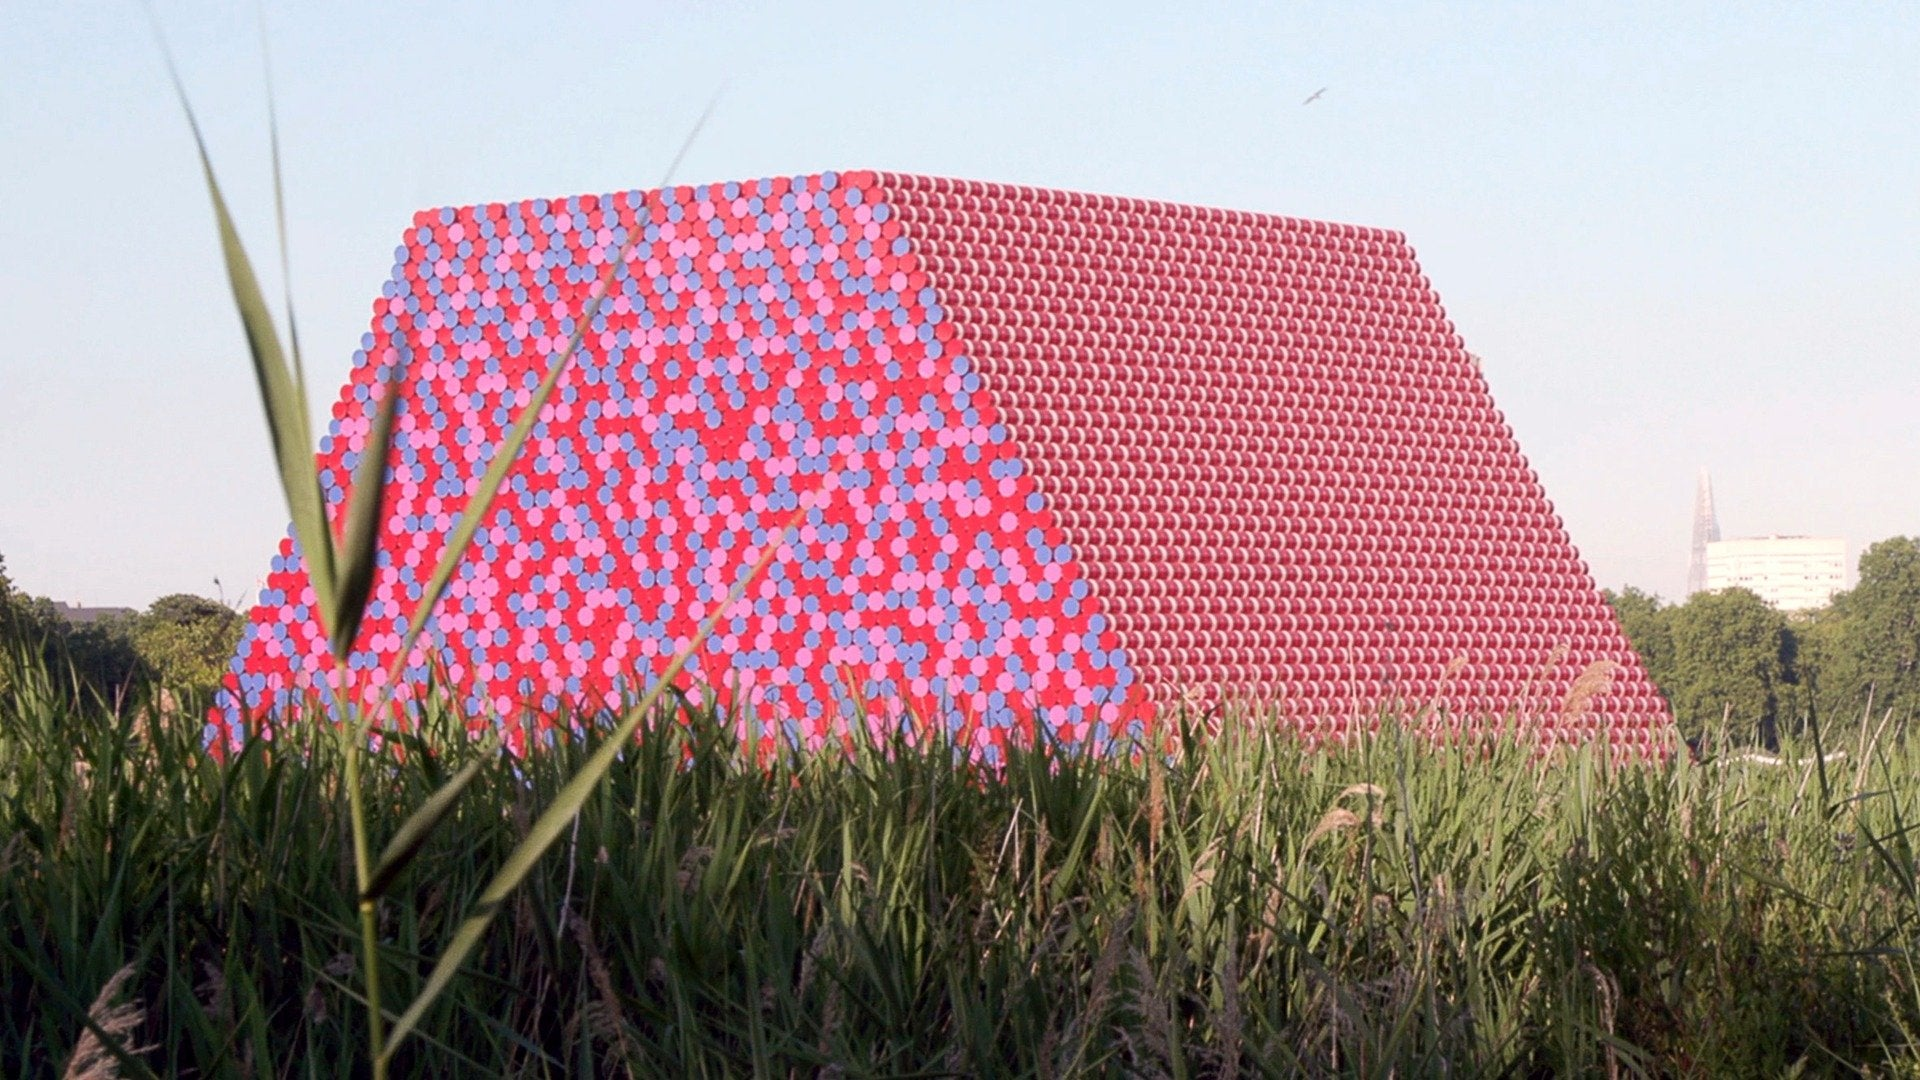 Christo and Jeanne-Claude: Monumental Art